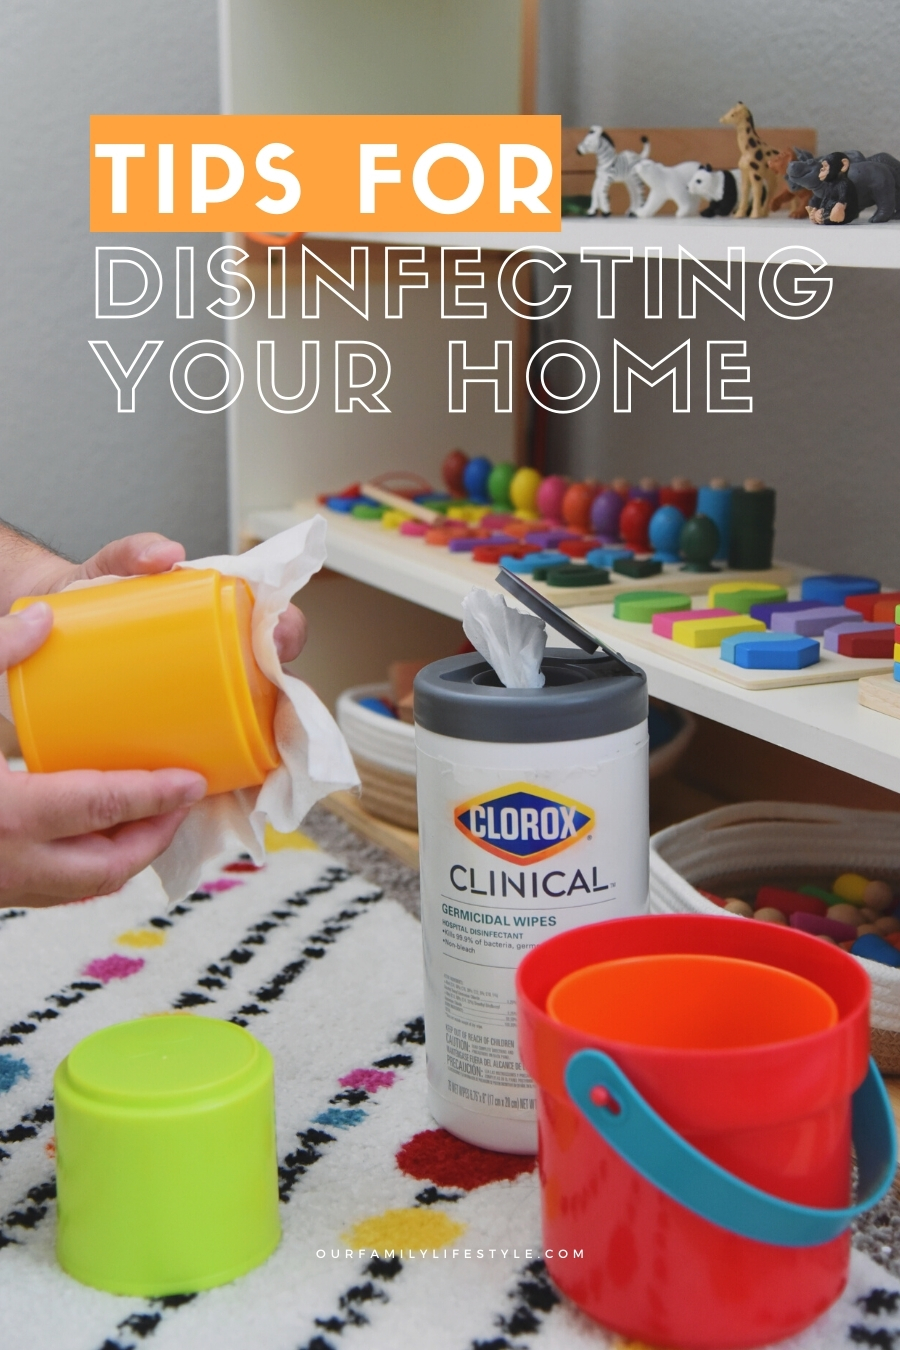 Tips for Disinfecting Your Home with Clorox Clinical